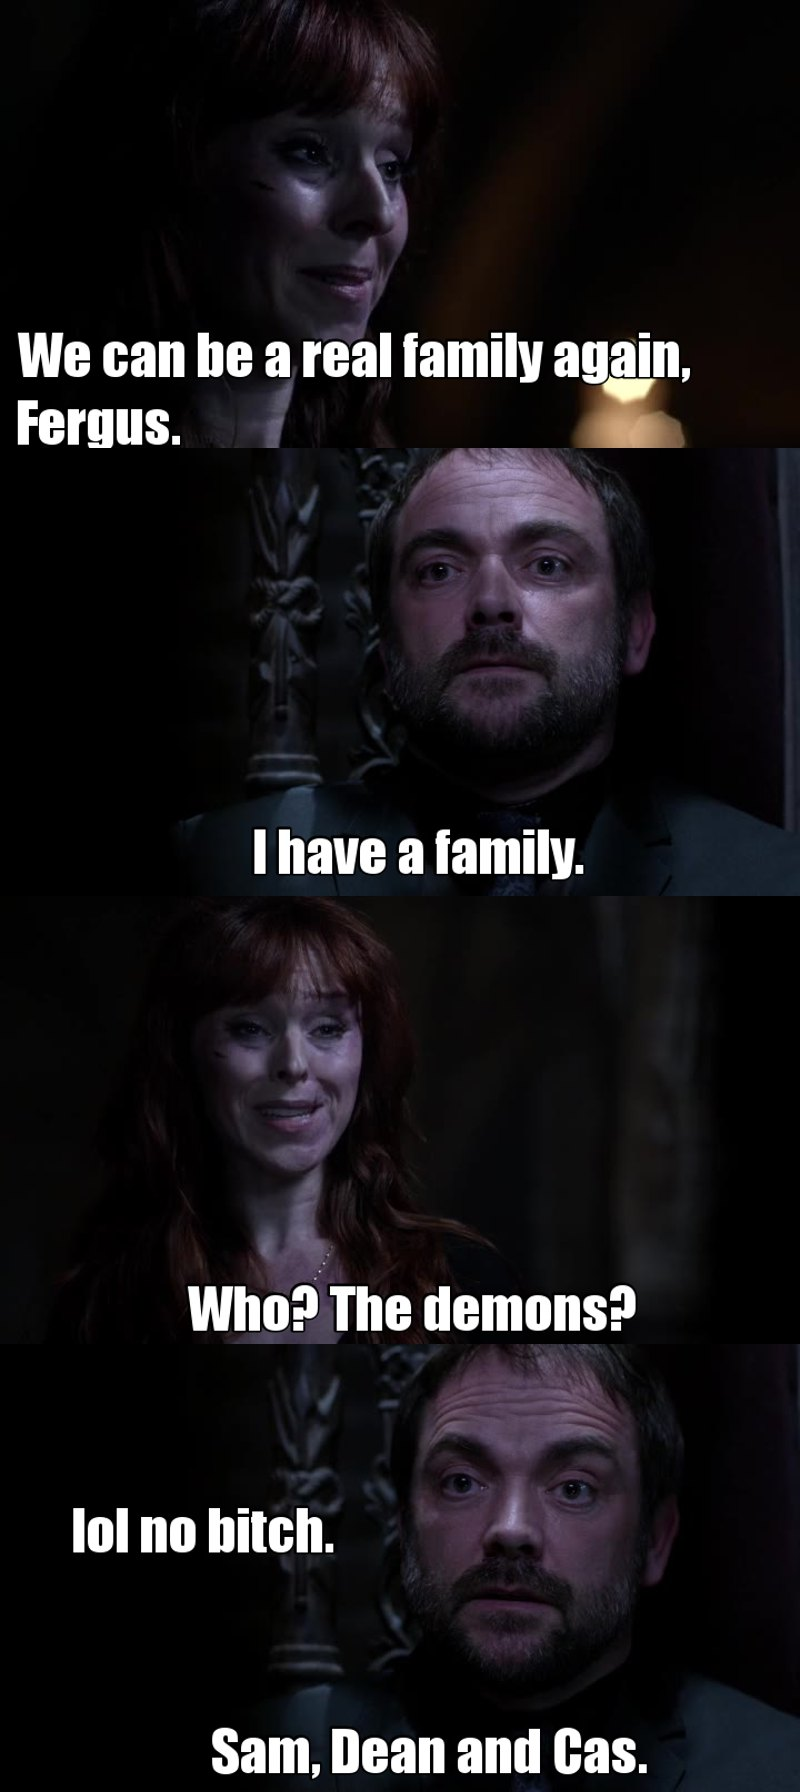 This is probably what Crowley really thought when he said he has a family.